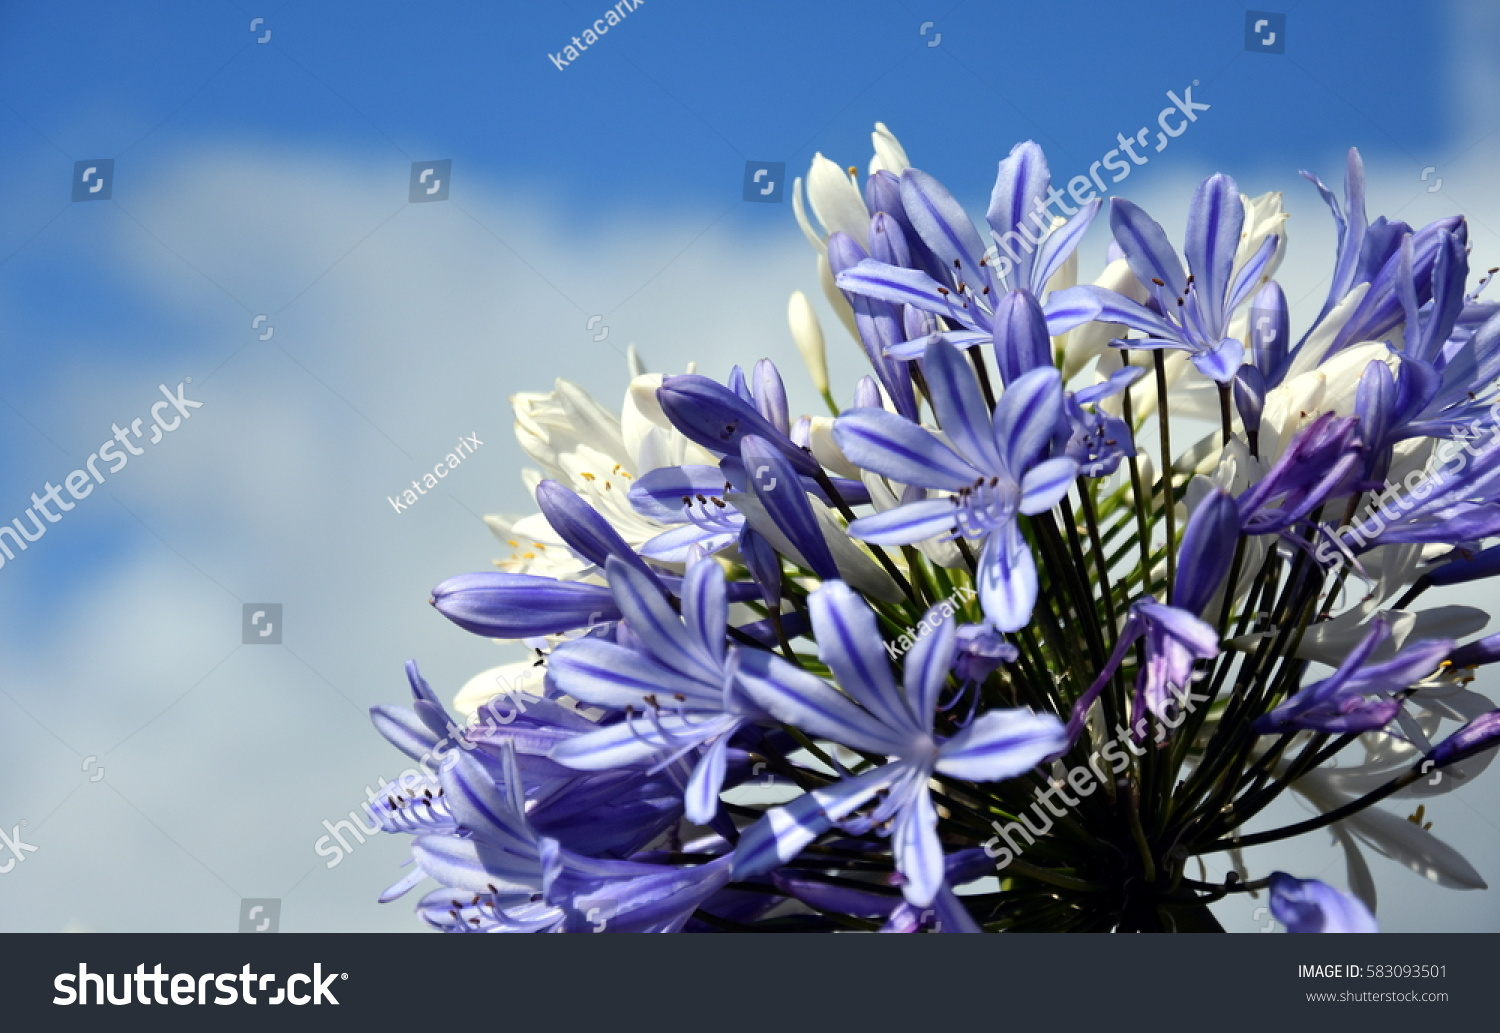 Quater lily nile called african blue stock photo edit now quater of lily of the nile also called african blue lily flower in purple izmirmasajfo